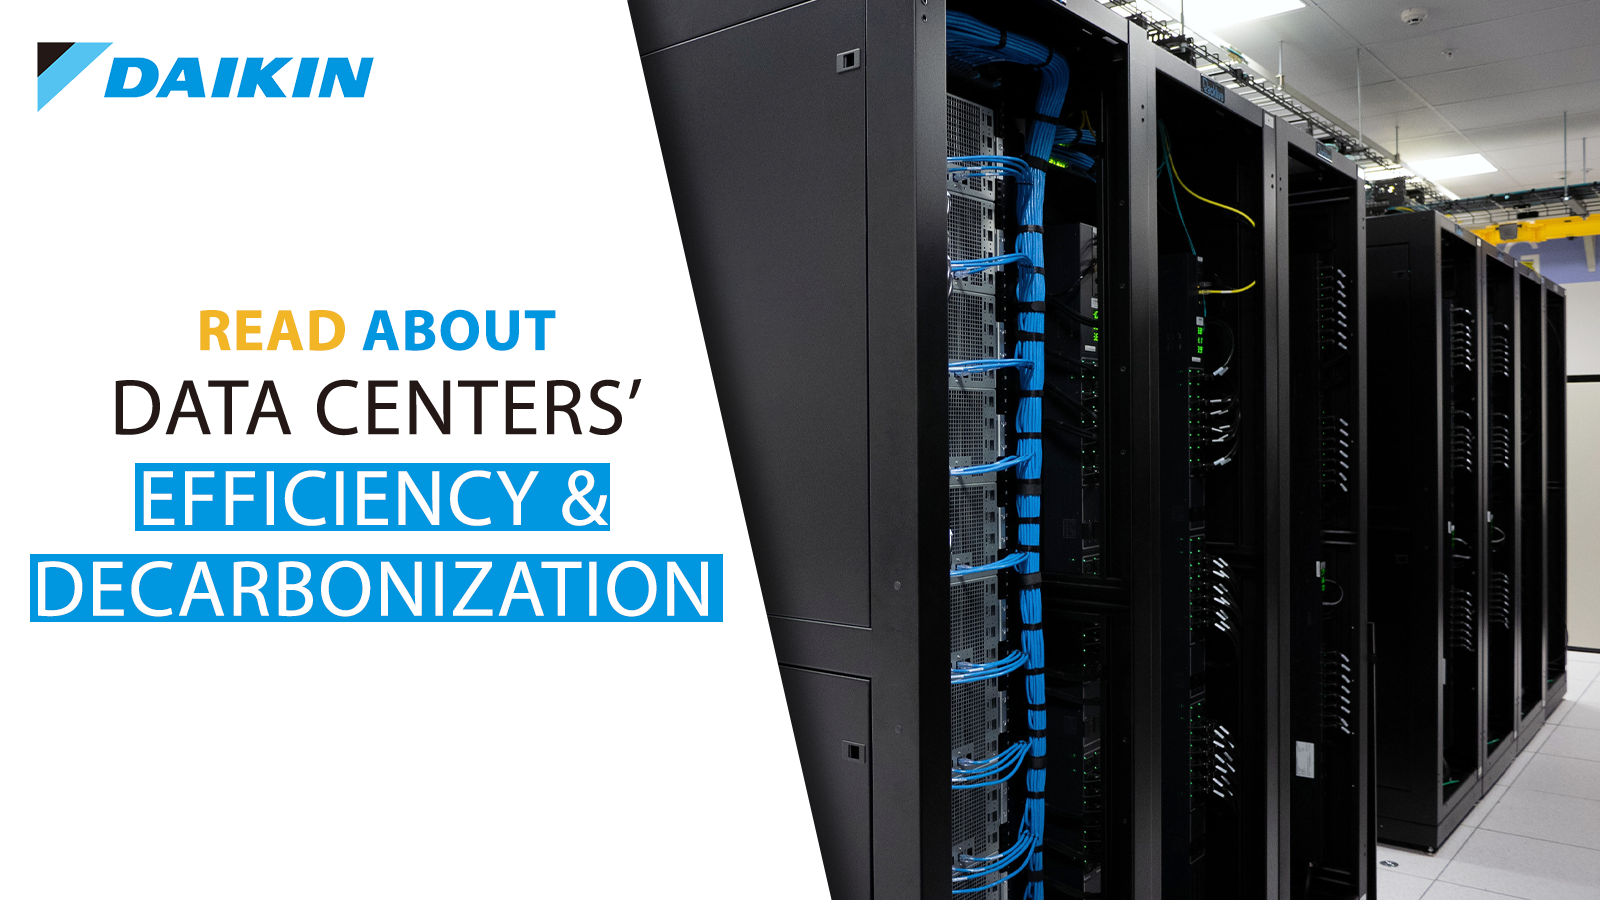 data centers' efficiency